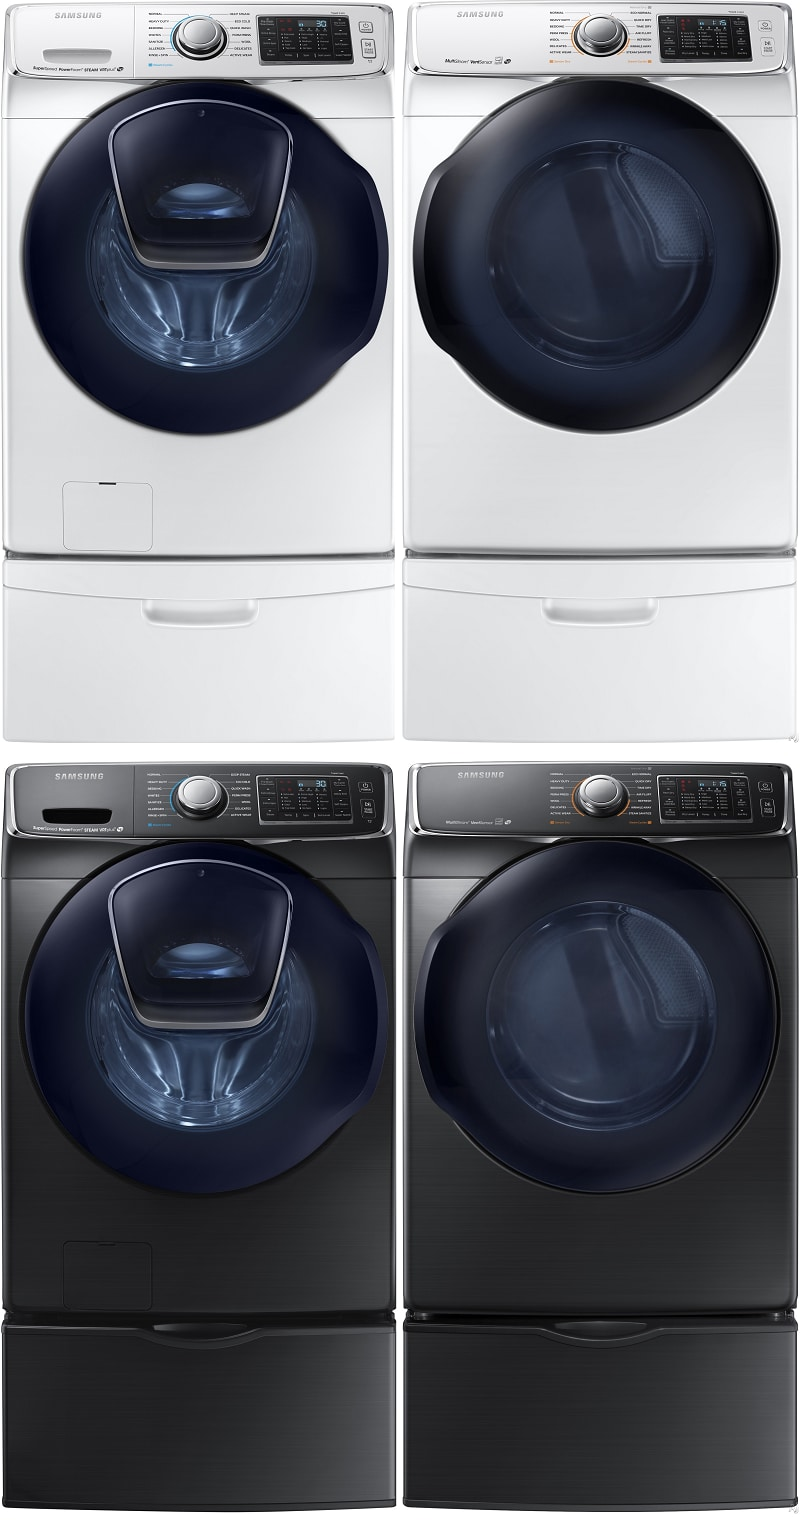 LG Titan Laundry Pair vs Samsung WF42H5200: Reviews ...